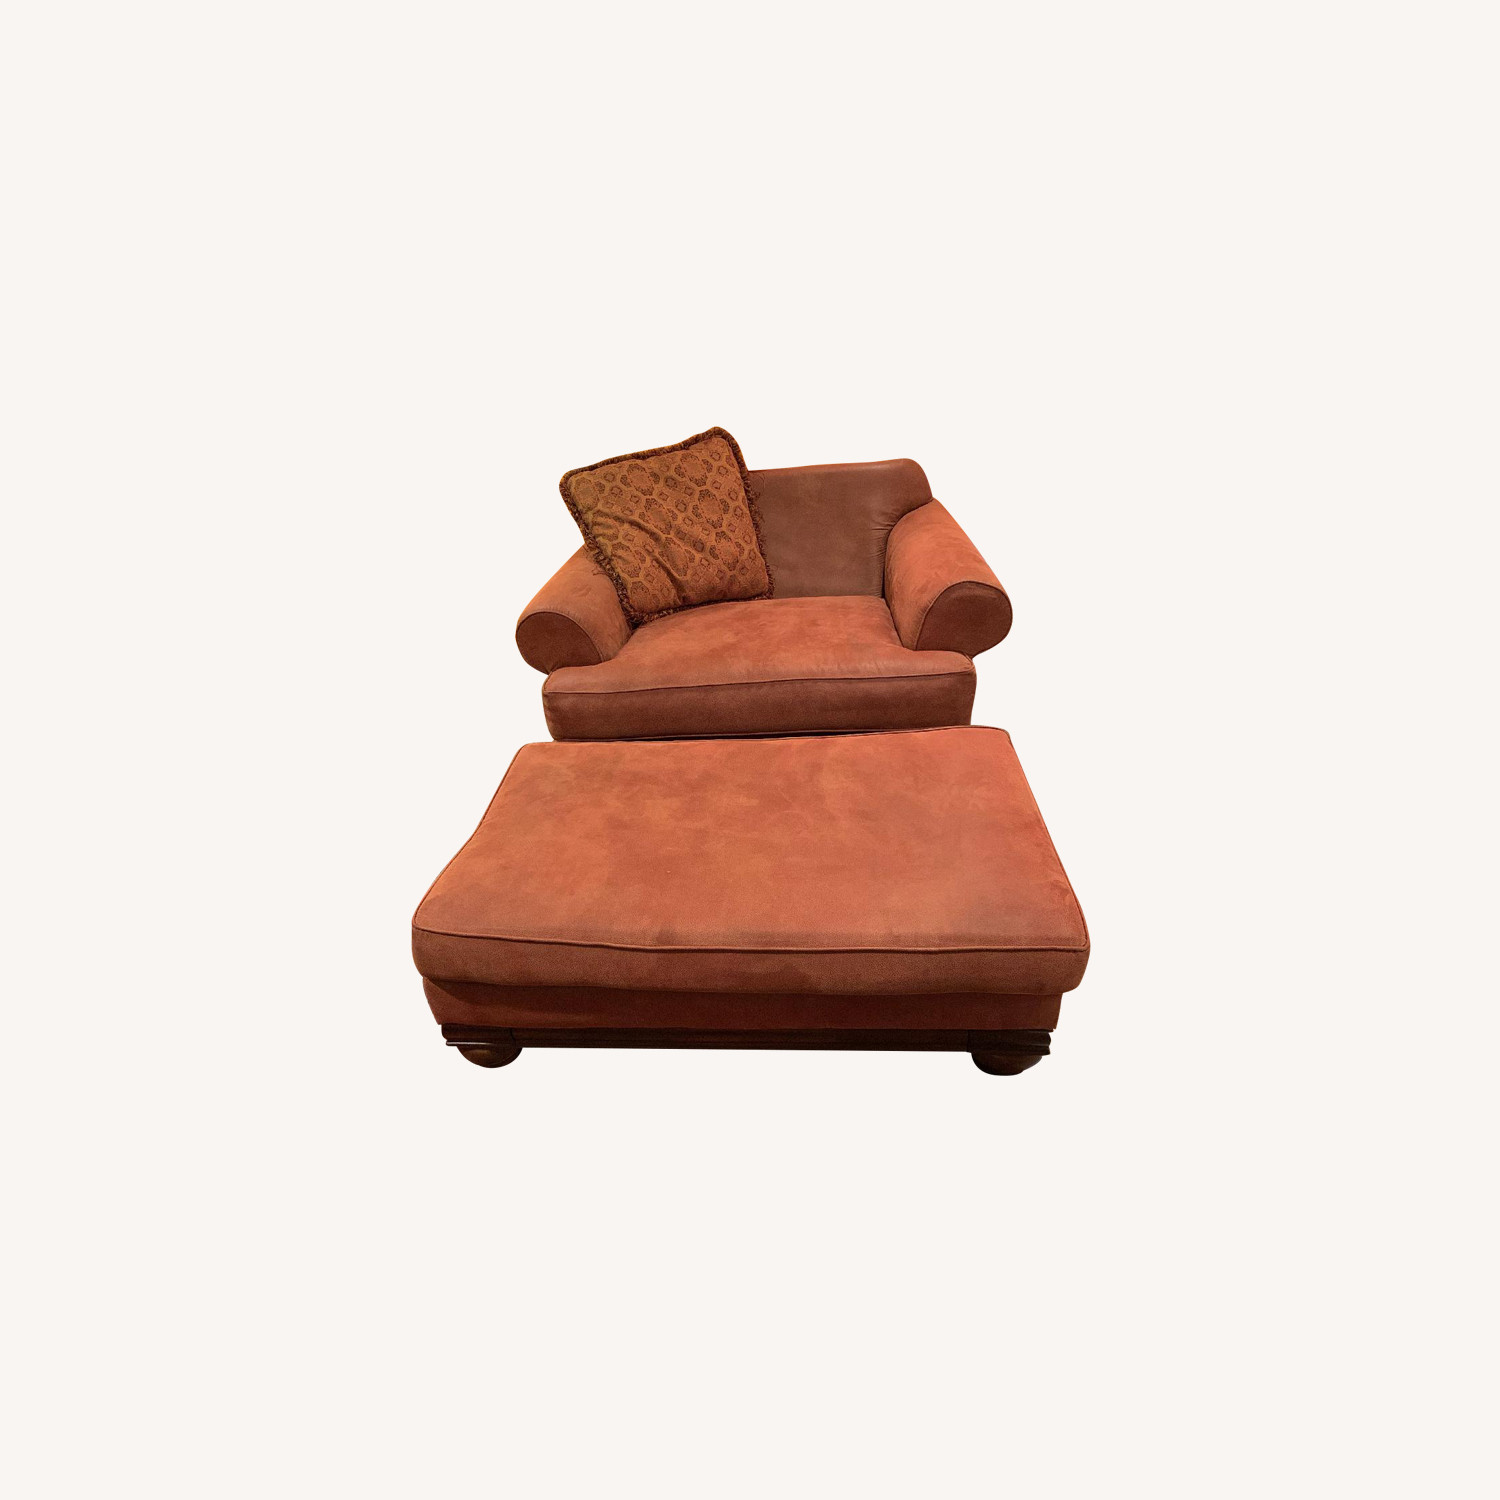 Peter Andrews Suede Chair & Ottoman